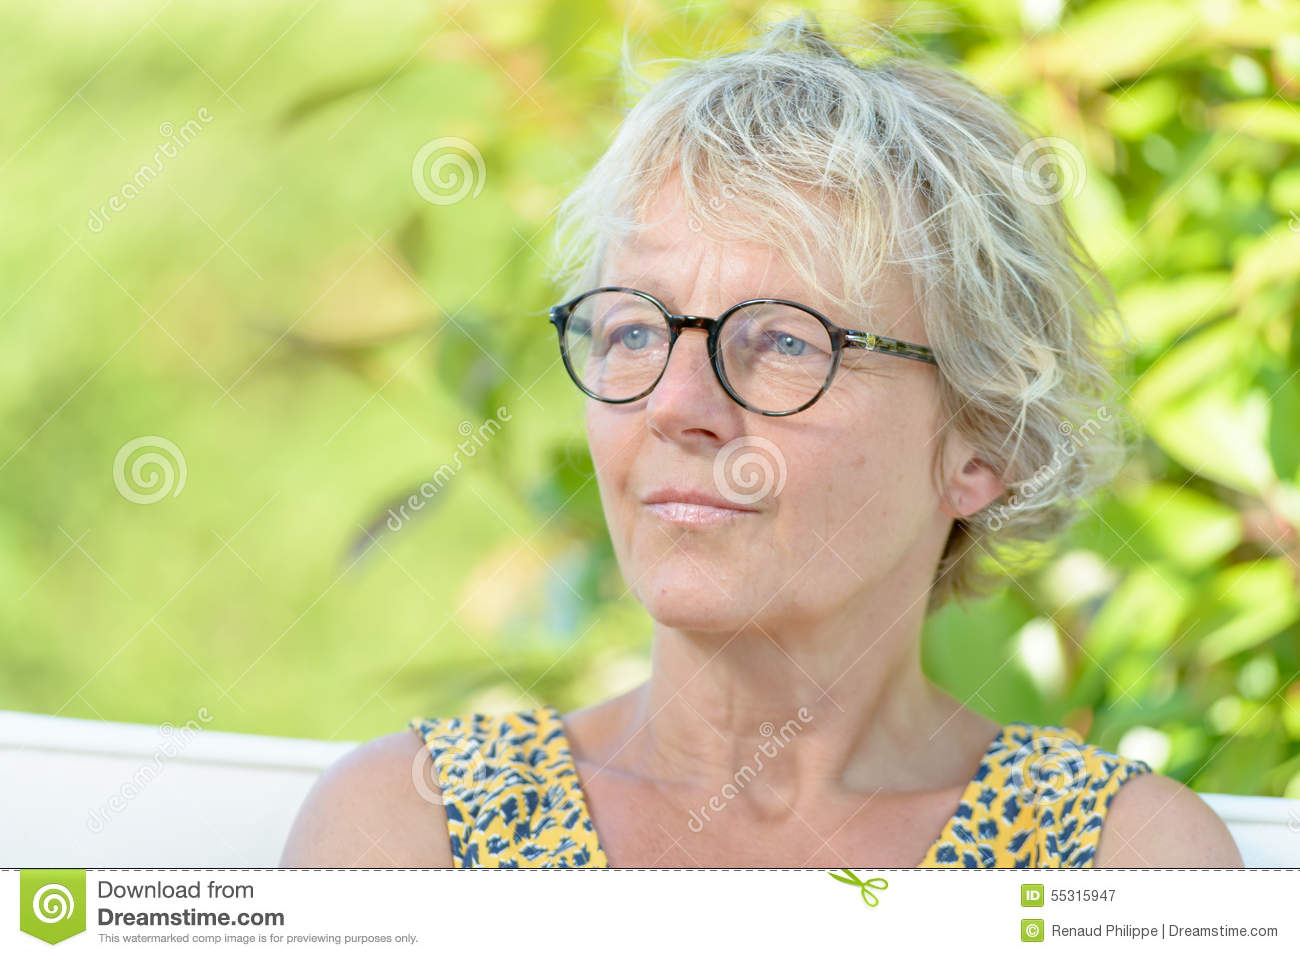 Portrait of a beautiful middle-aged woman